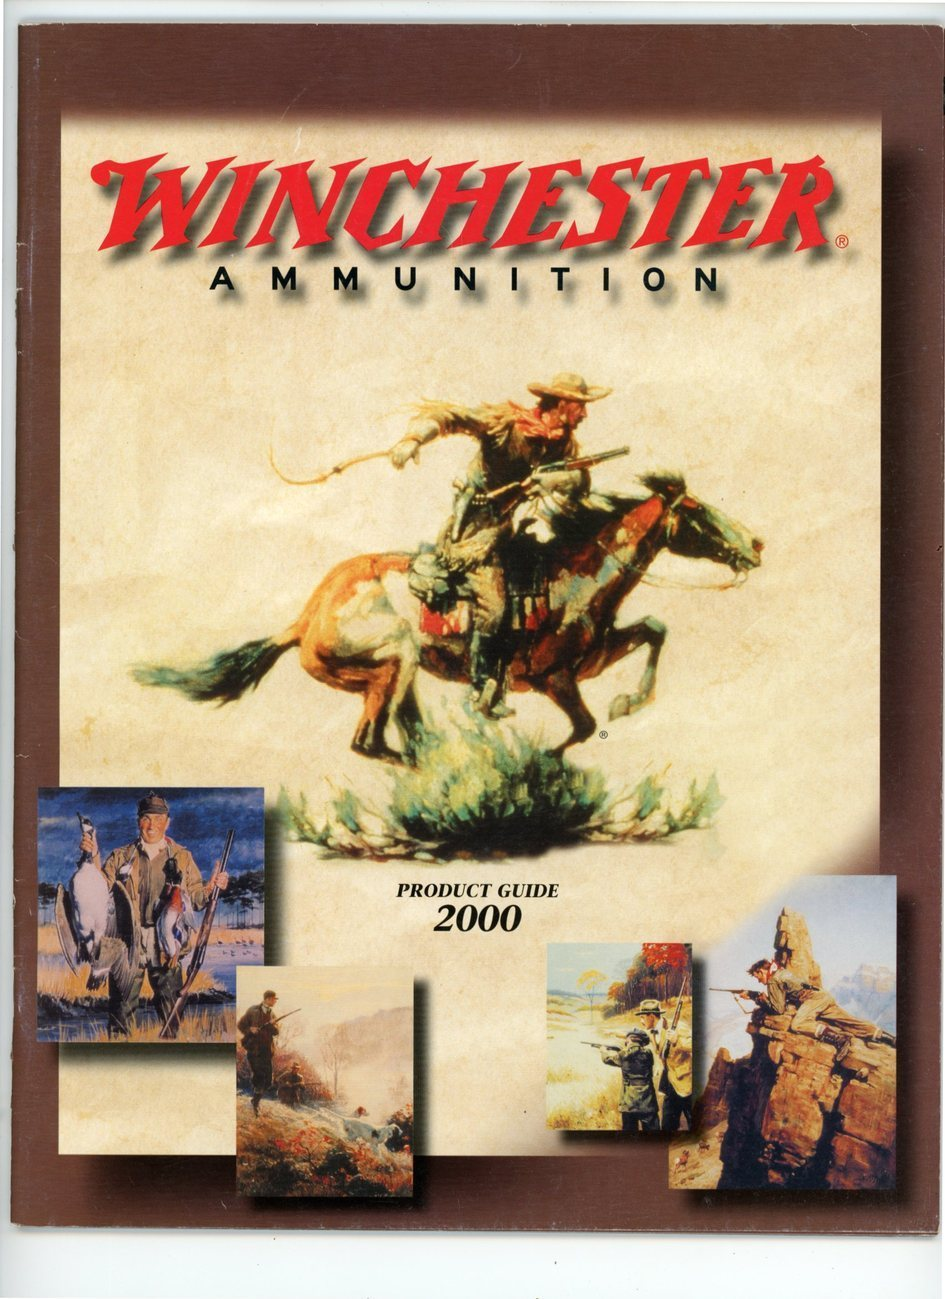 Primary image for Winchester ammunition catalog product guide 2000 boxes bullets advertising